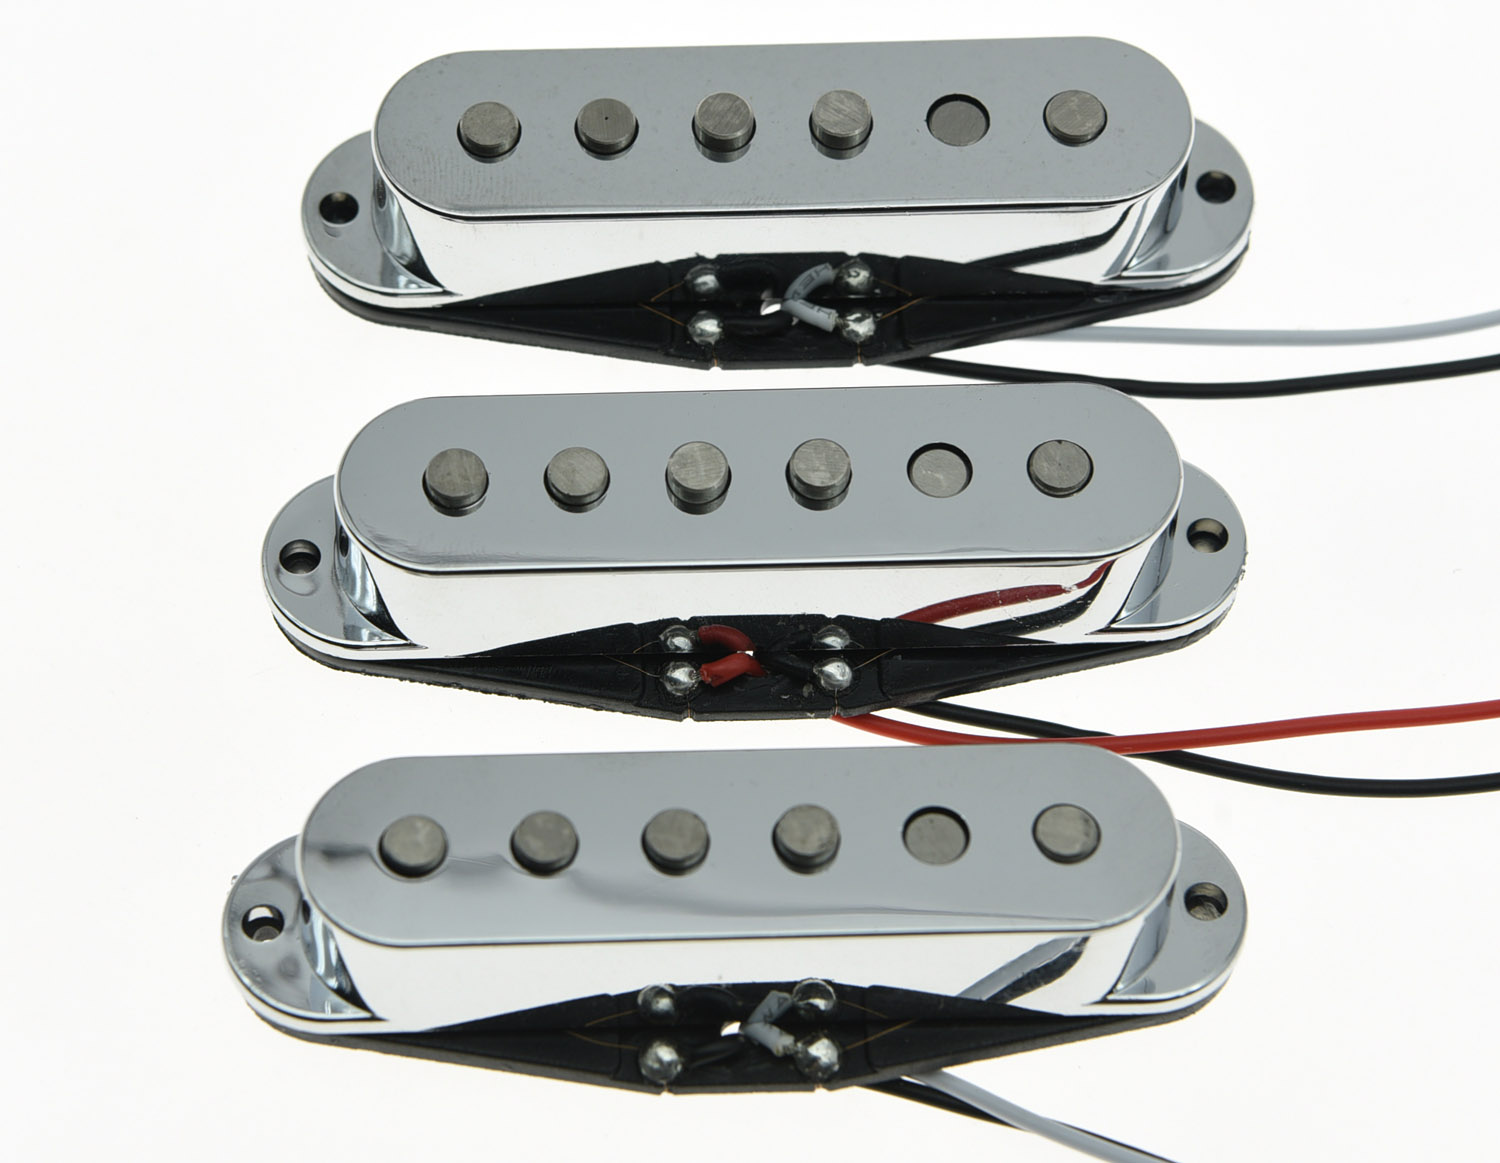 KAISH 3x Chrome Alnico 5 Single Coil Pickups ST Strat SSS Pickup Set tsai hotsale vintage voice single coil pickup for stratocaster ceramic bobbin alnico single coil guitar pickup staggered pole